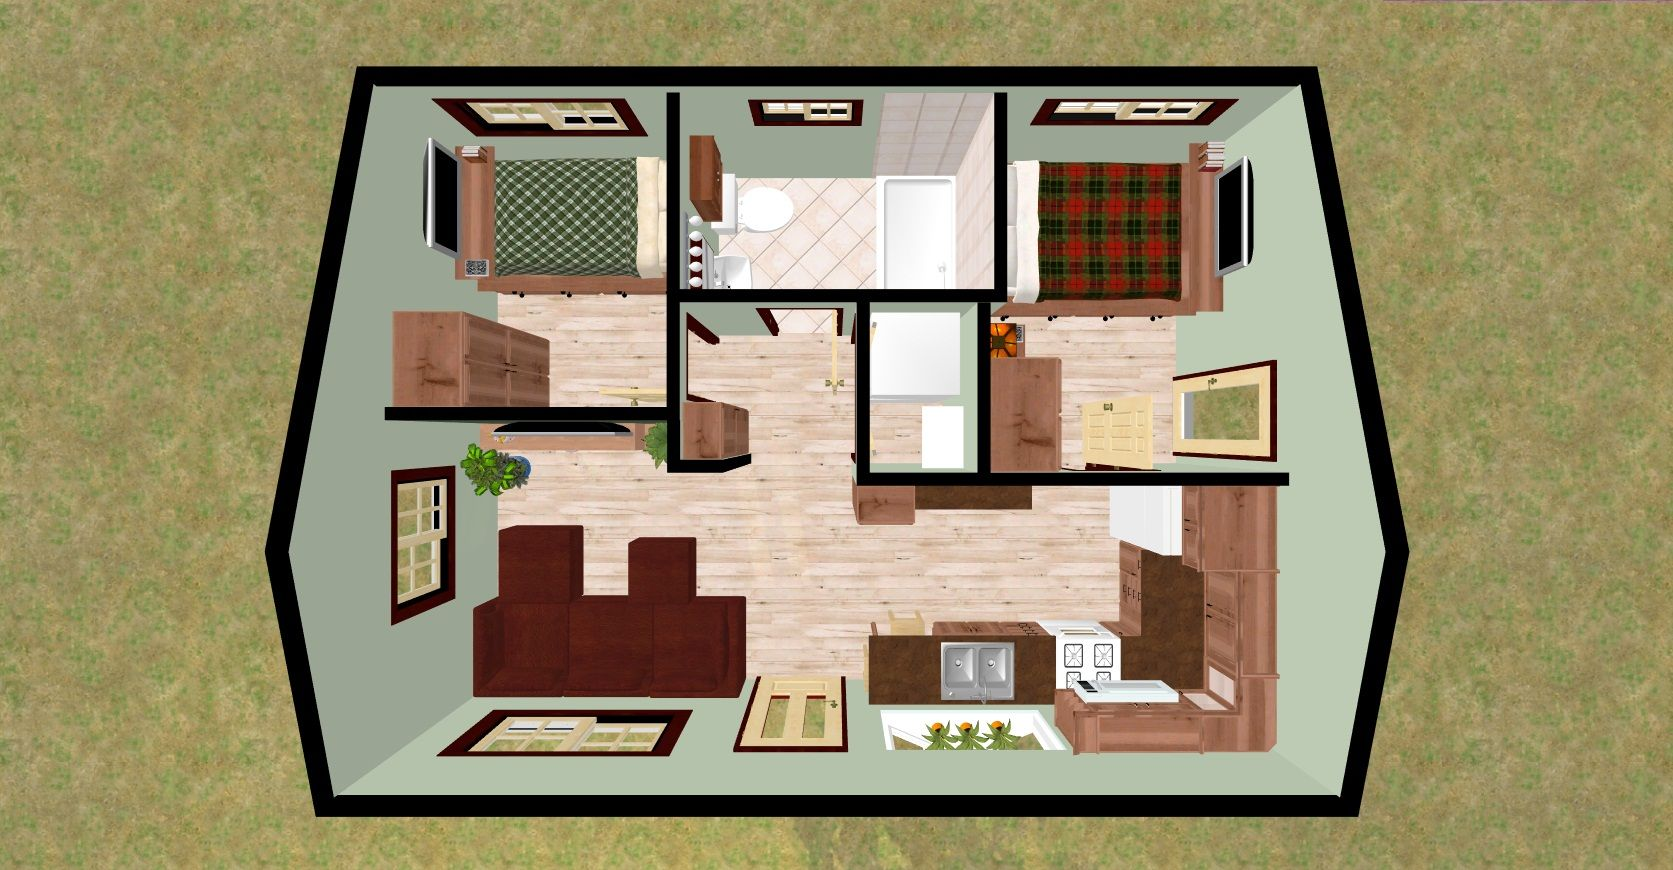 cozyhomeplanscom 432 sq ft small house firefly 3d - Small Homes Plans 2